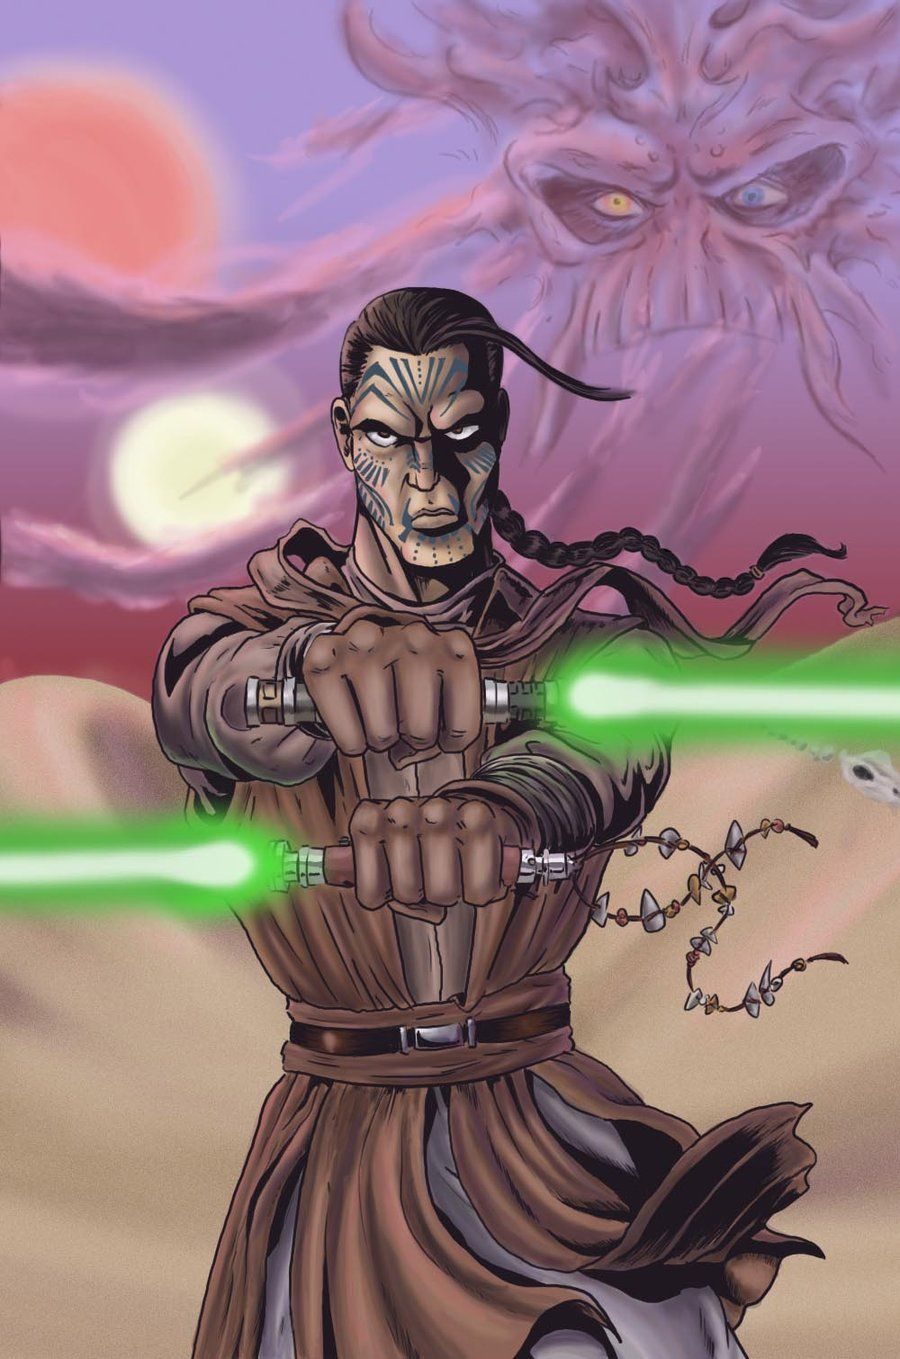 A'Sharad Hett - A Jedi Master whose father was Sharad Hett another famous Jedi Master. After … | Star wars characters pictures, Star wars pictures, Star wars images